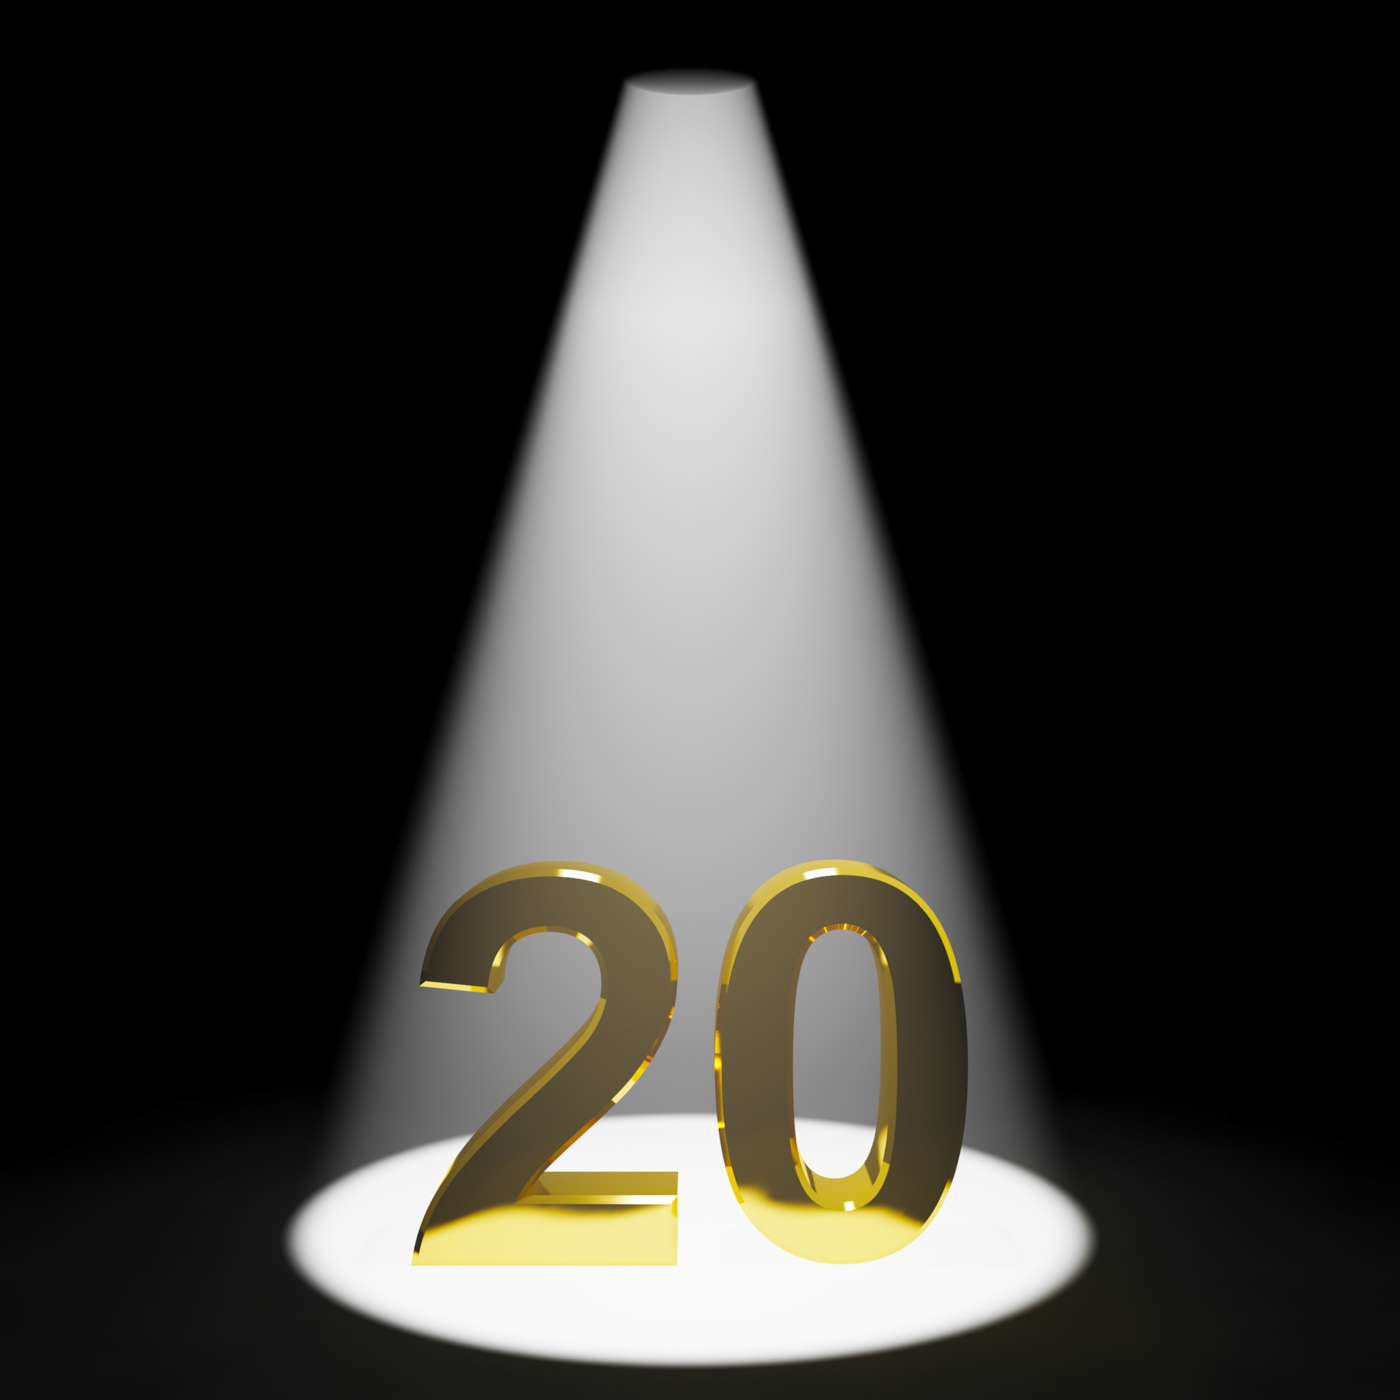 Gold 20th or twenty 3d number showing anniversary or birthday photo